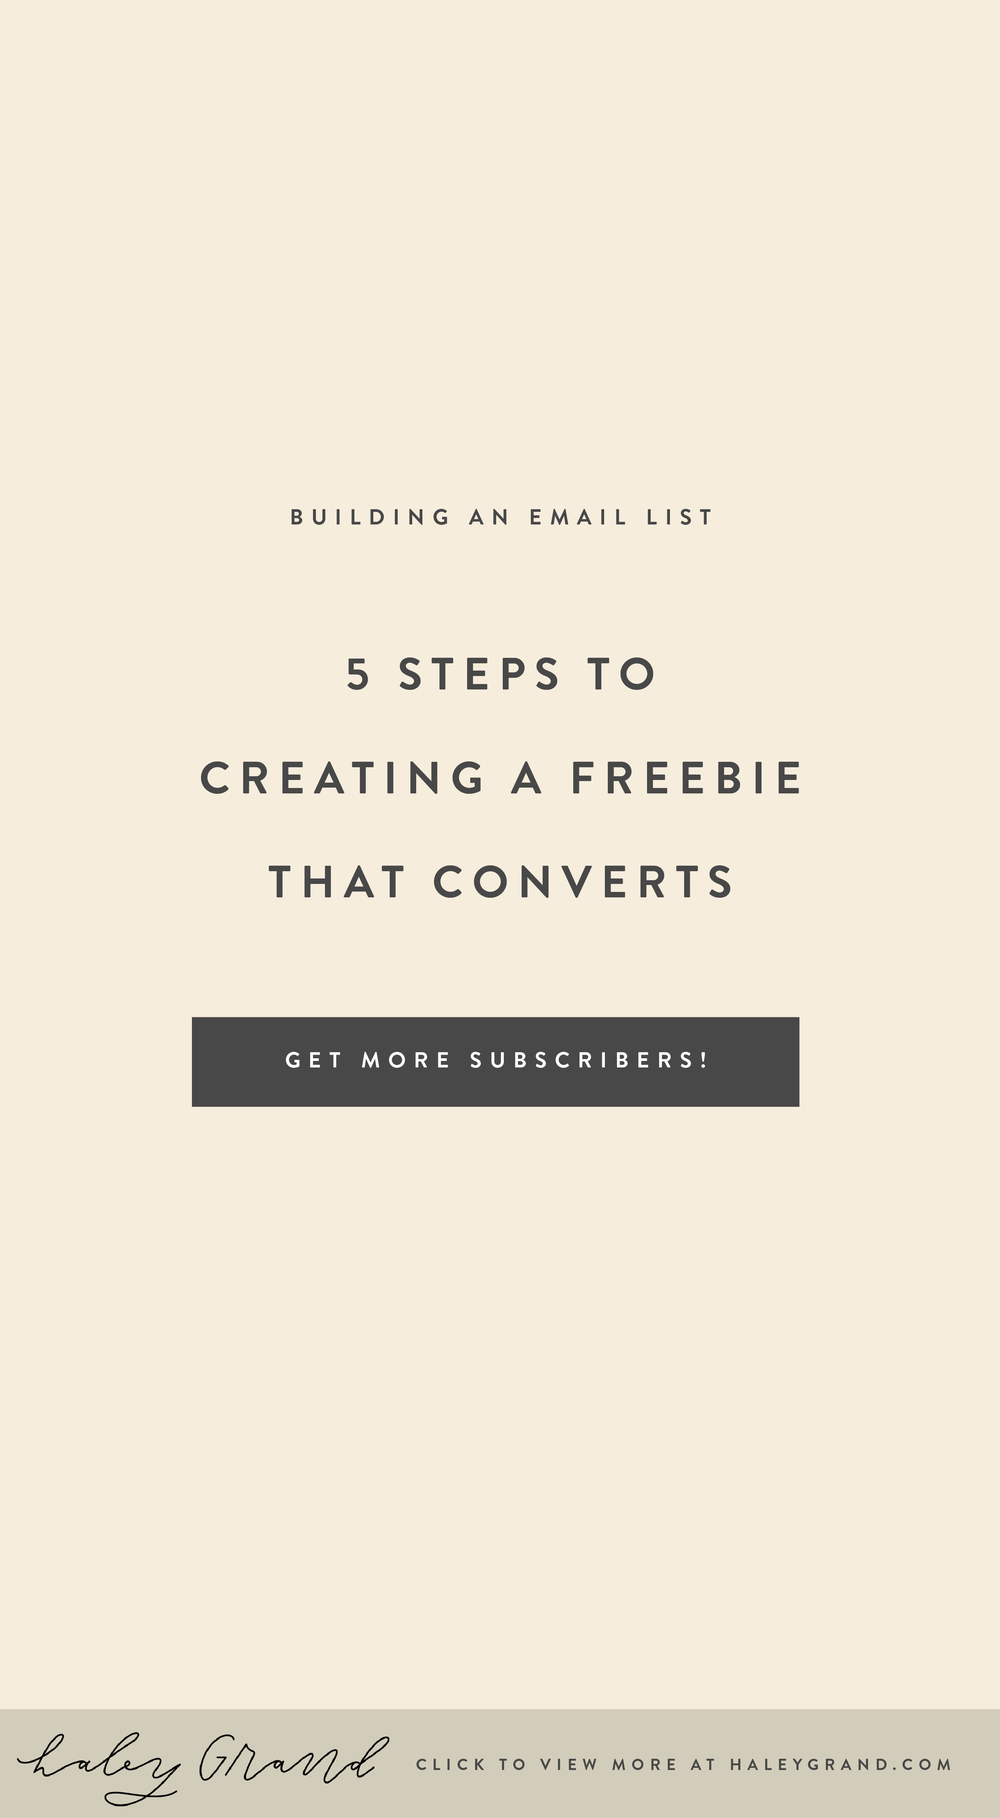 Create a freebie that converts with these 5 simple steps. Take your creative business to the next level today! Click to learn more from Haley Grand. #branding #handlettering